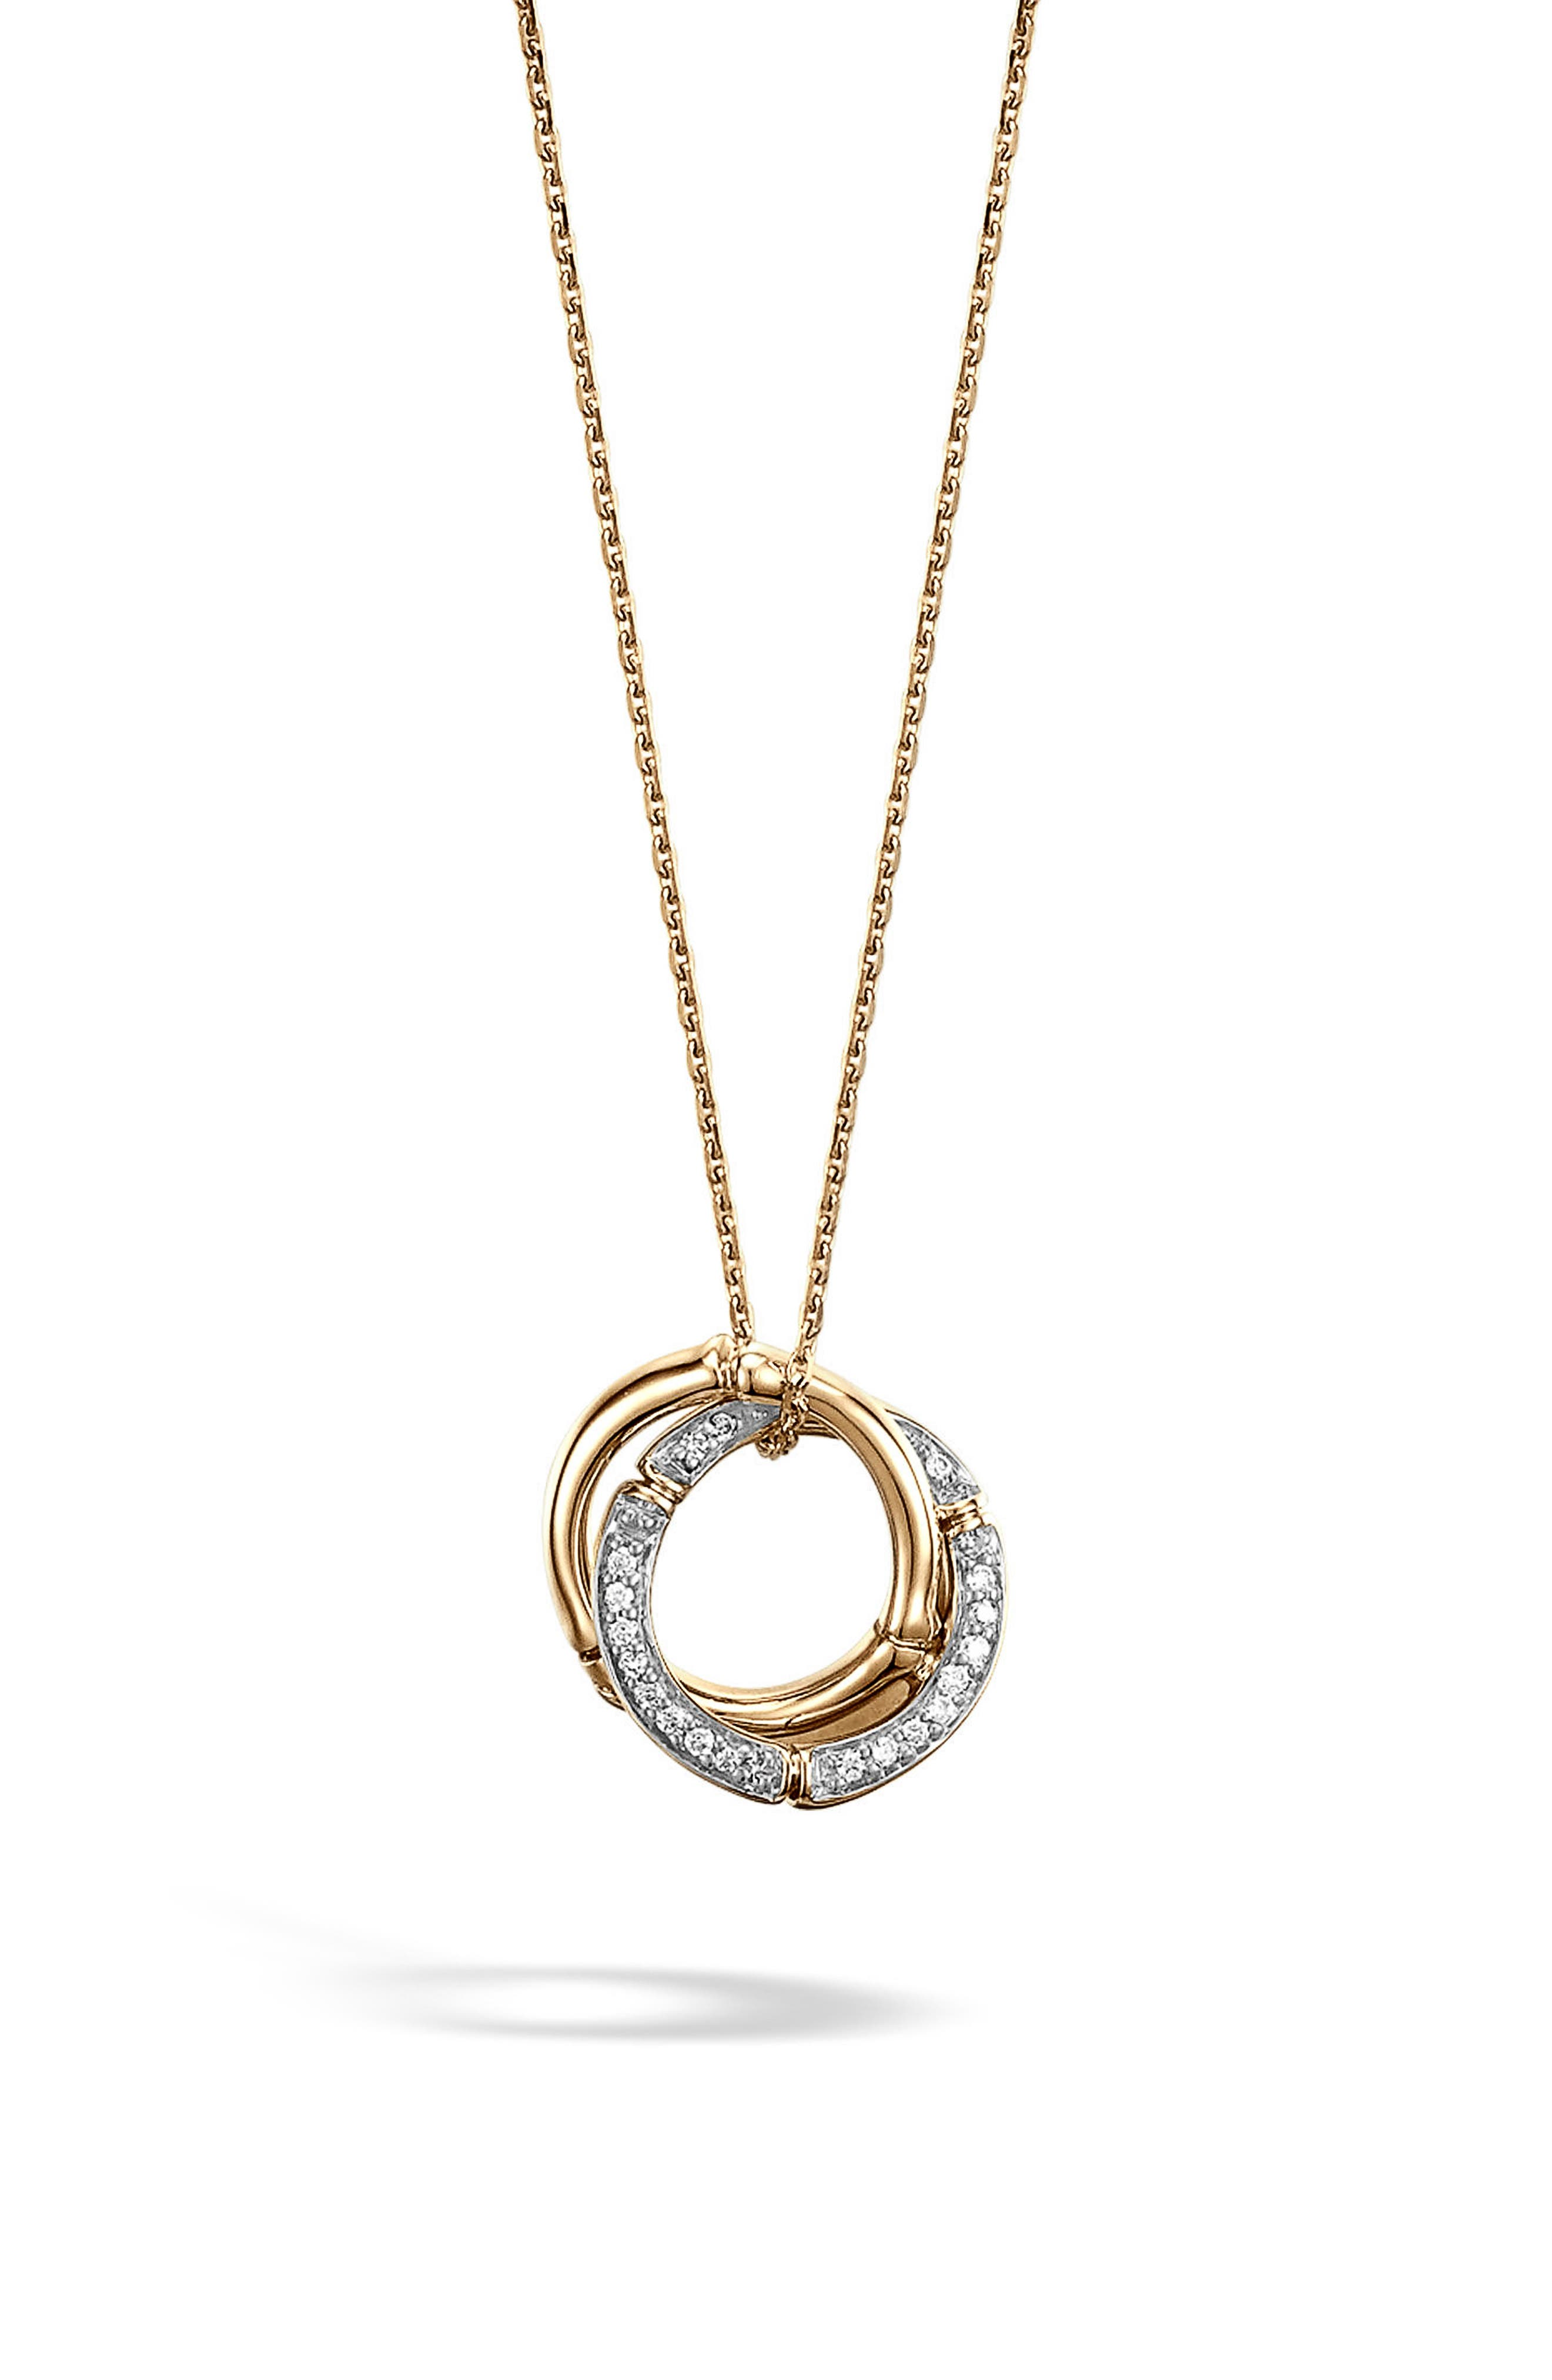 Bamboo Diamond & 18k Gold Pendant Necklace,                             Main thumbnail 1, color,                             GOLD